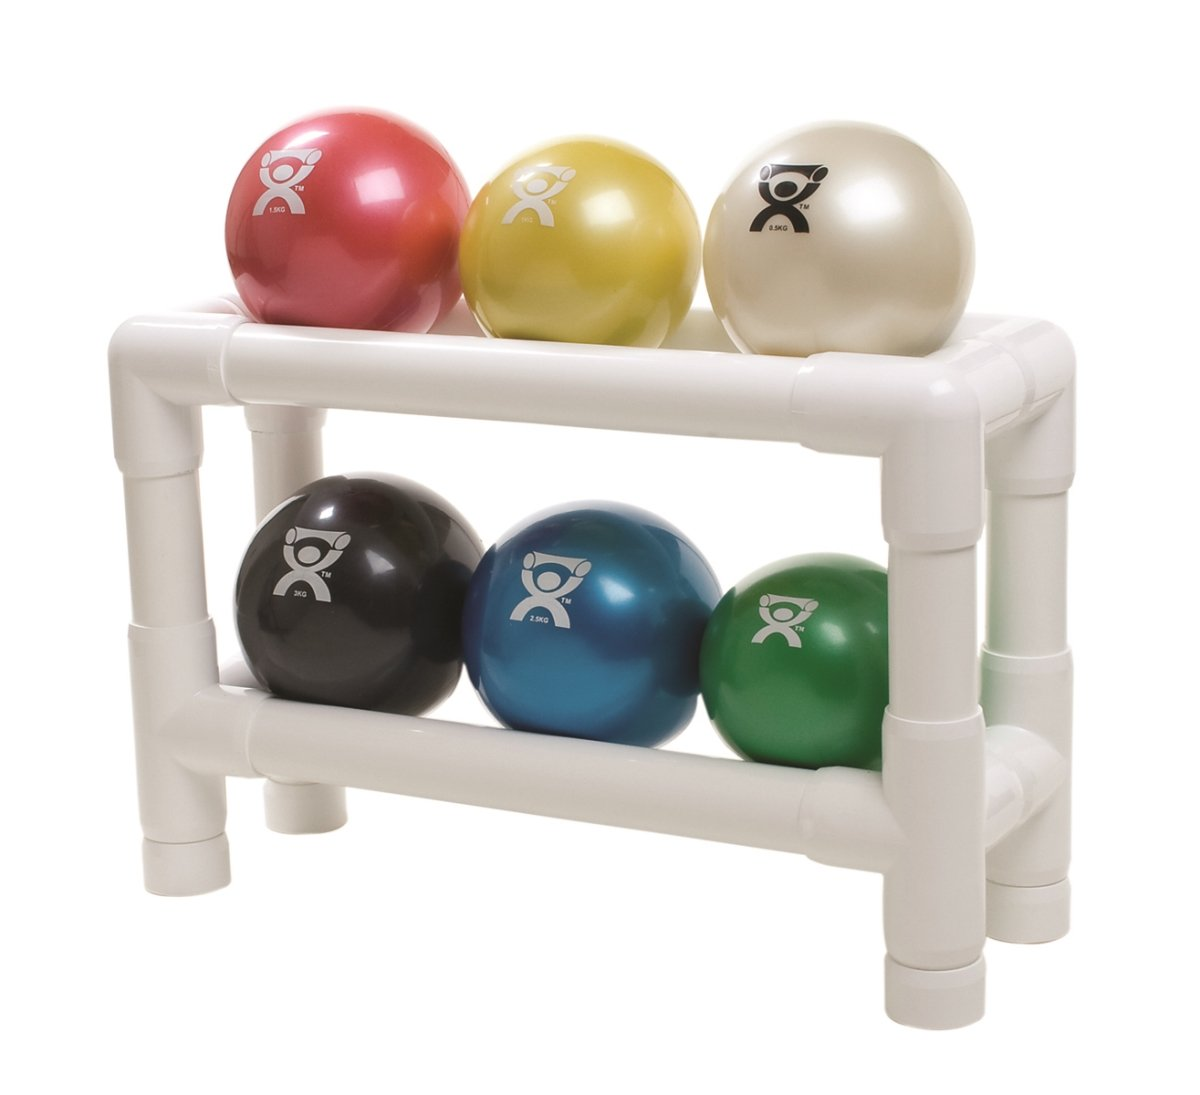 CanDo 10-3188 Wate Ball, Hand Held Size, 6-piece Set, 1 each Tan through Black with 2-Tier Rack